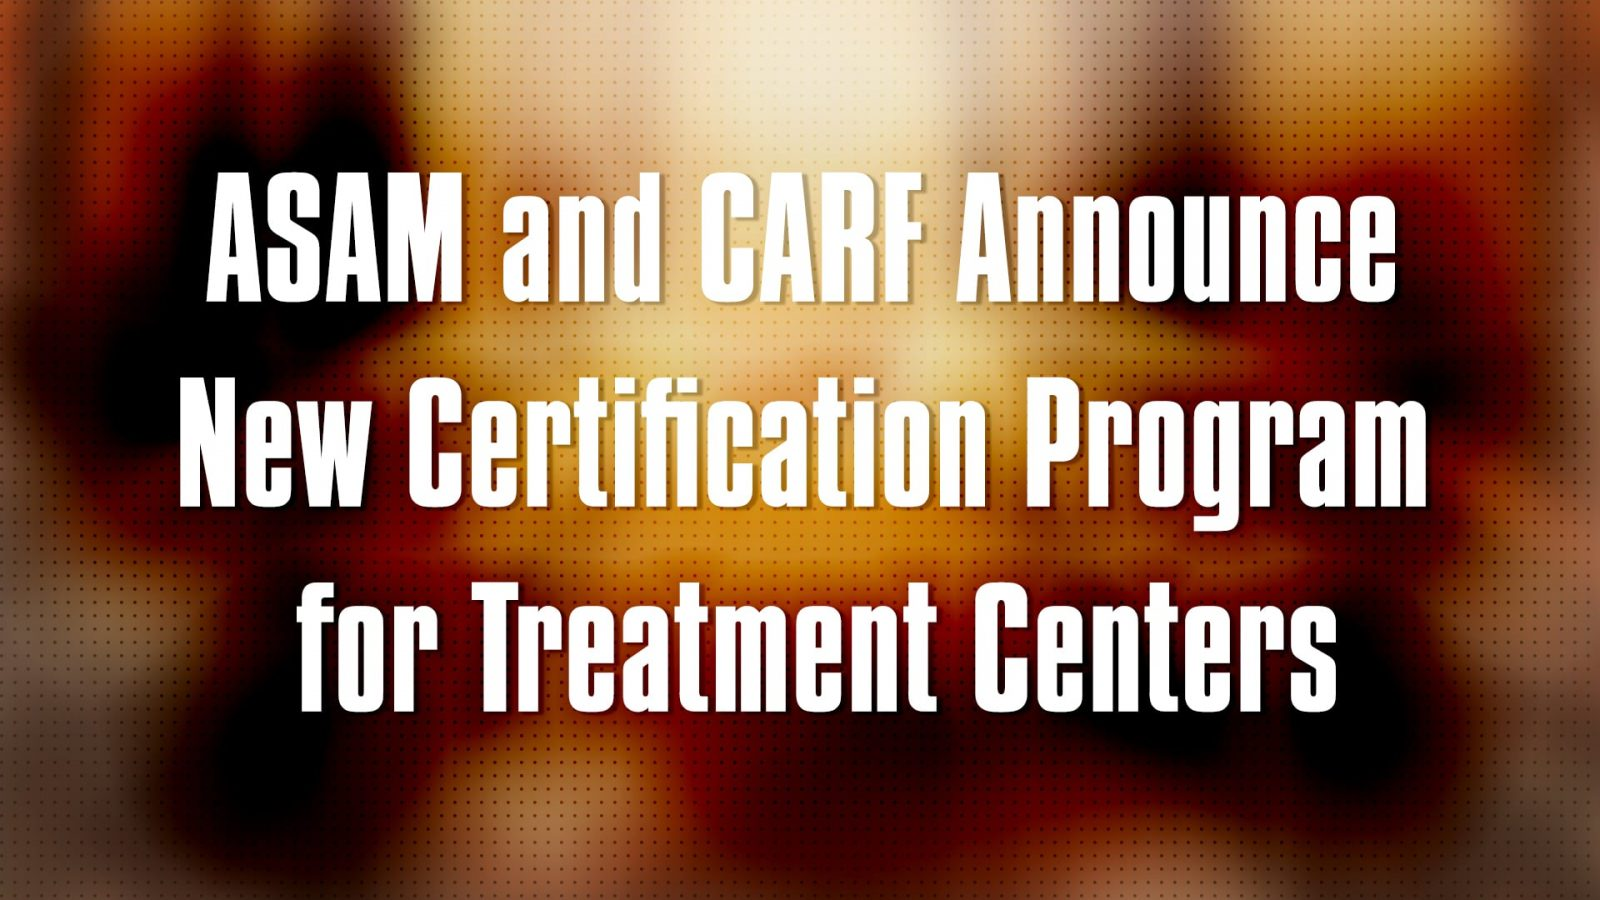 ASAM and CARF Announce New Certification Program for Treatment Centers